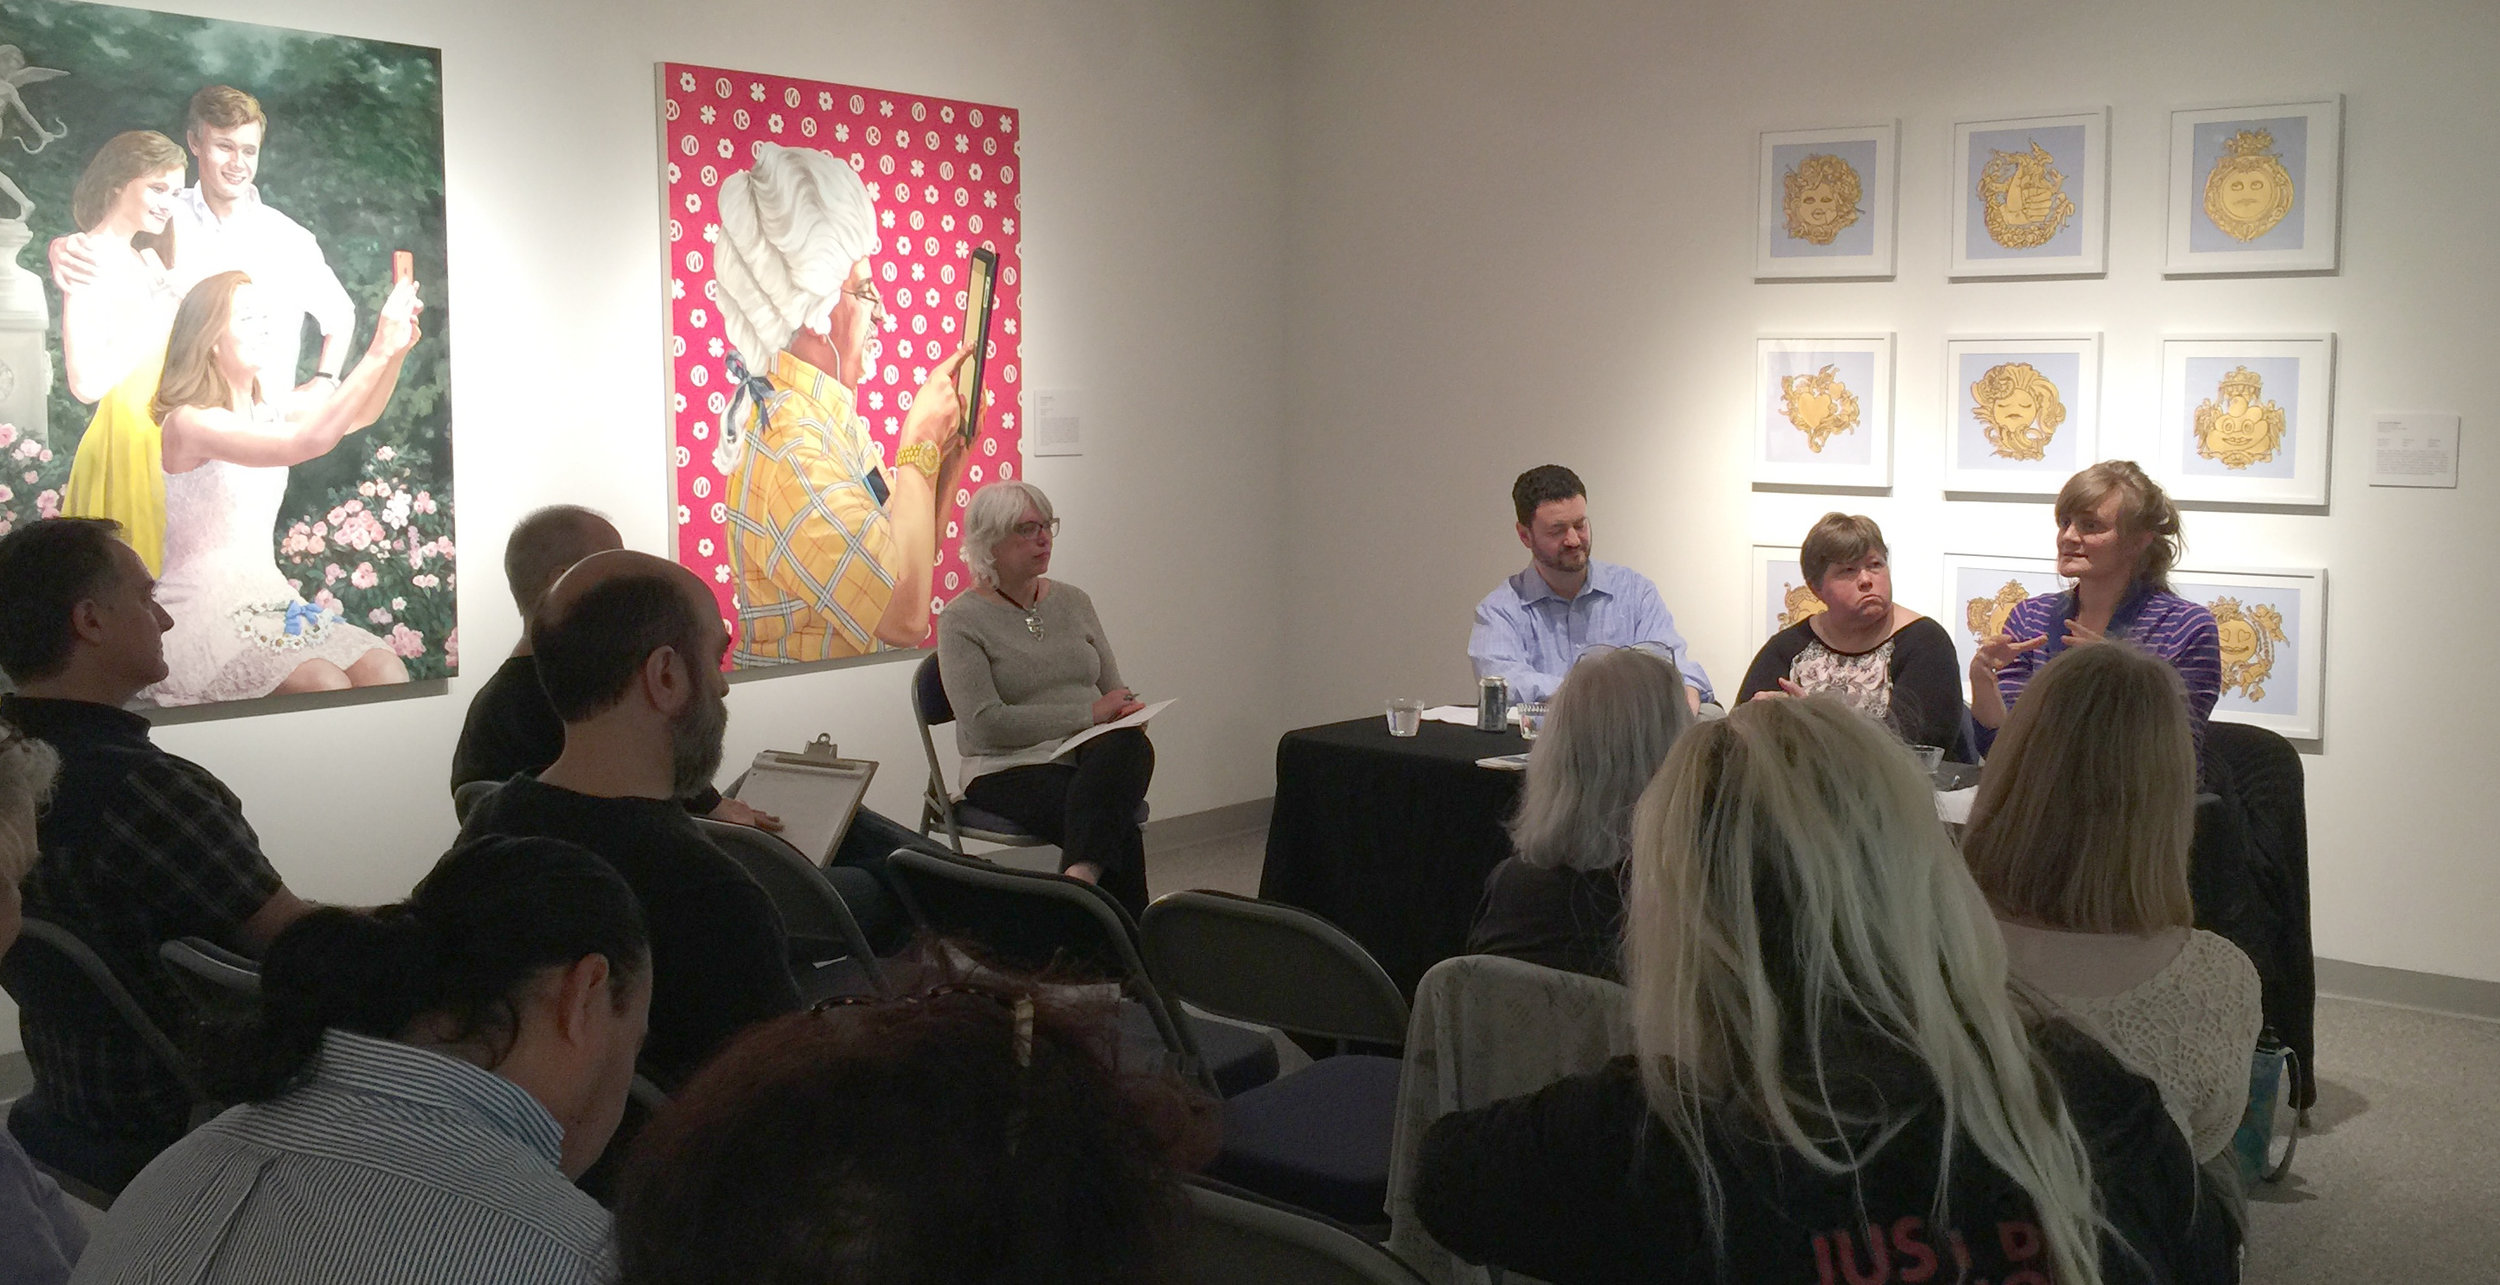 The Business of Art panelists (left to right): Moderator Sandy Martini, Jared Green, Gayle Mahoney and Gwen Steemel